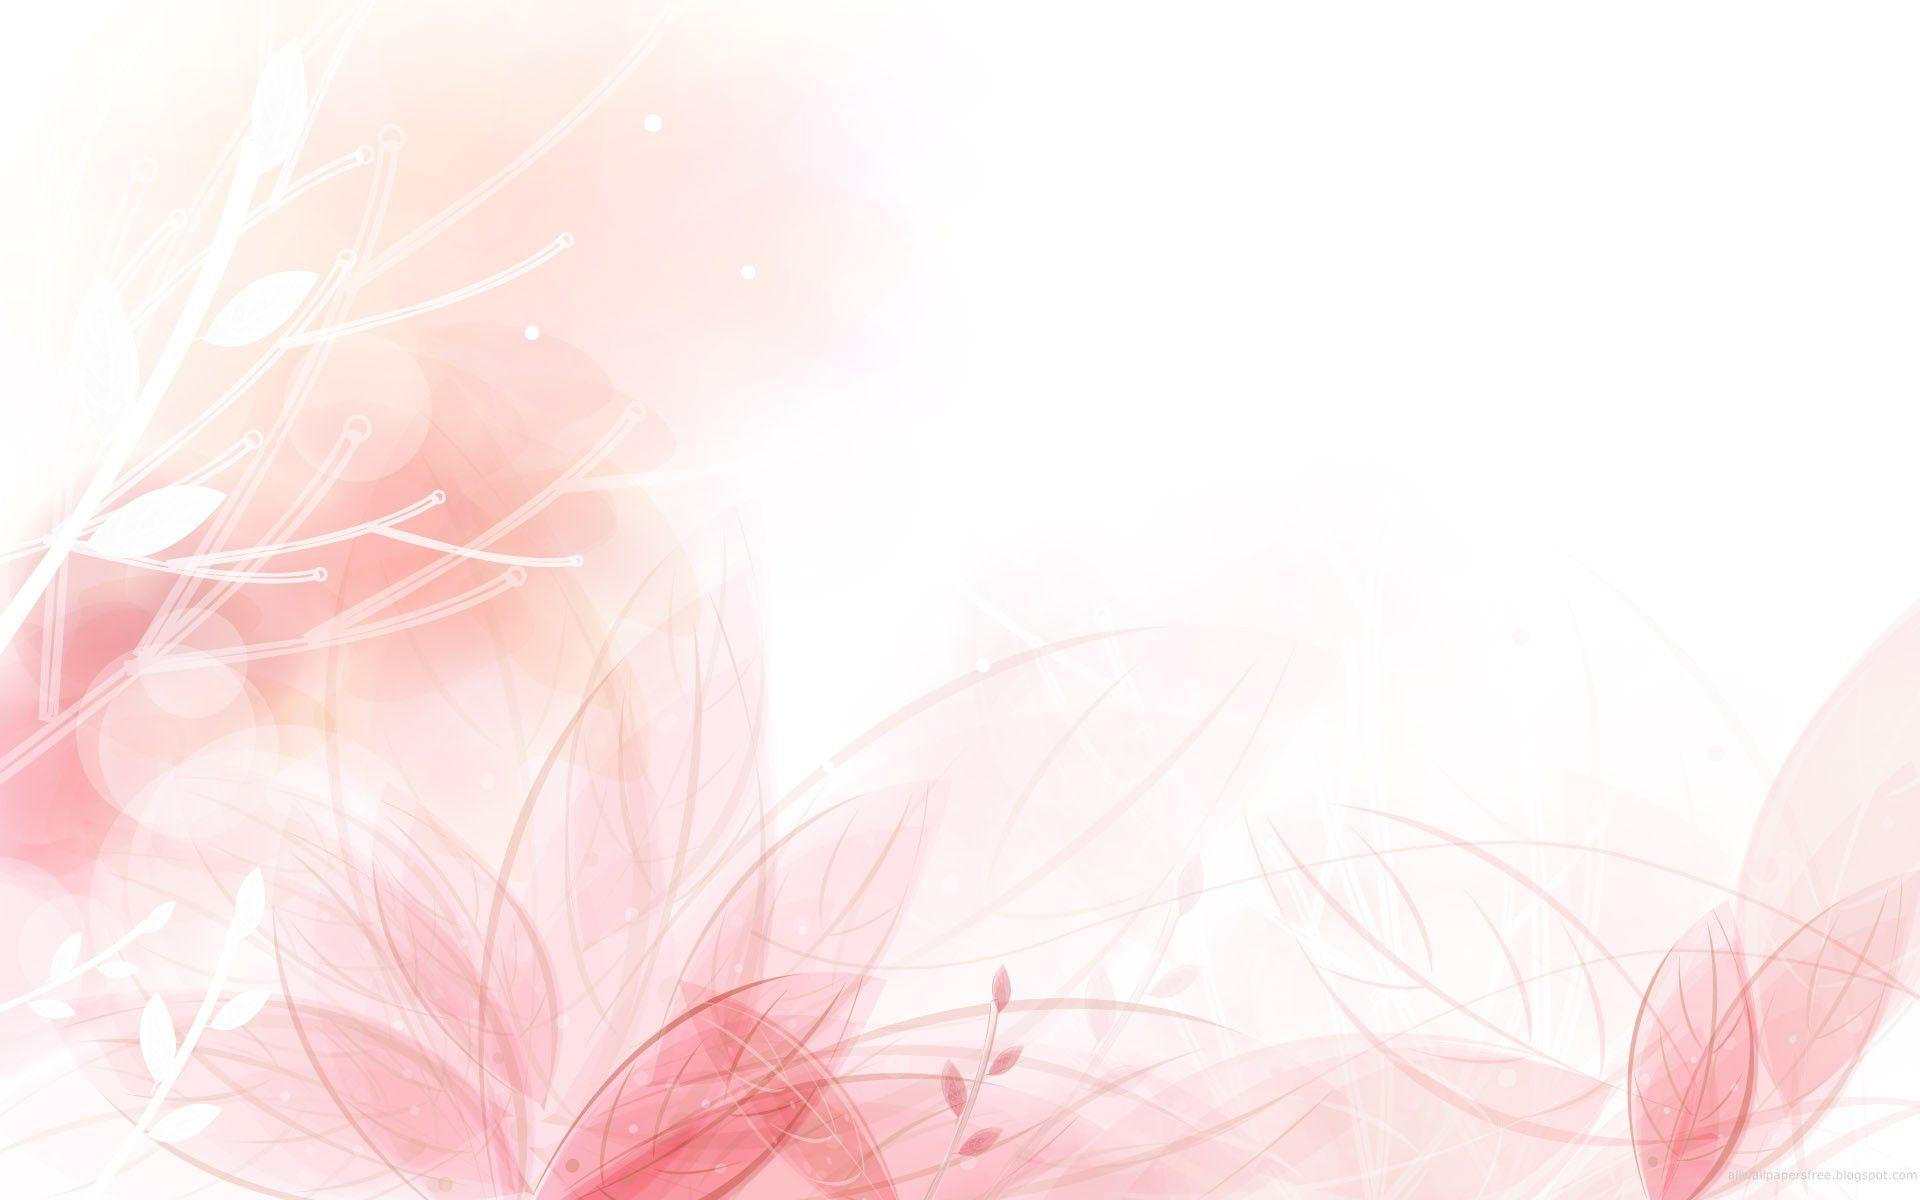 Light Pink Wallpapers - Full HD wallpaper search